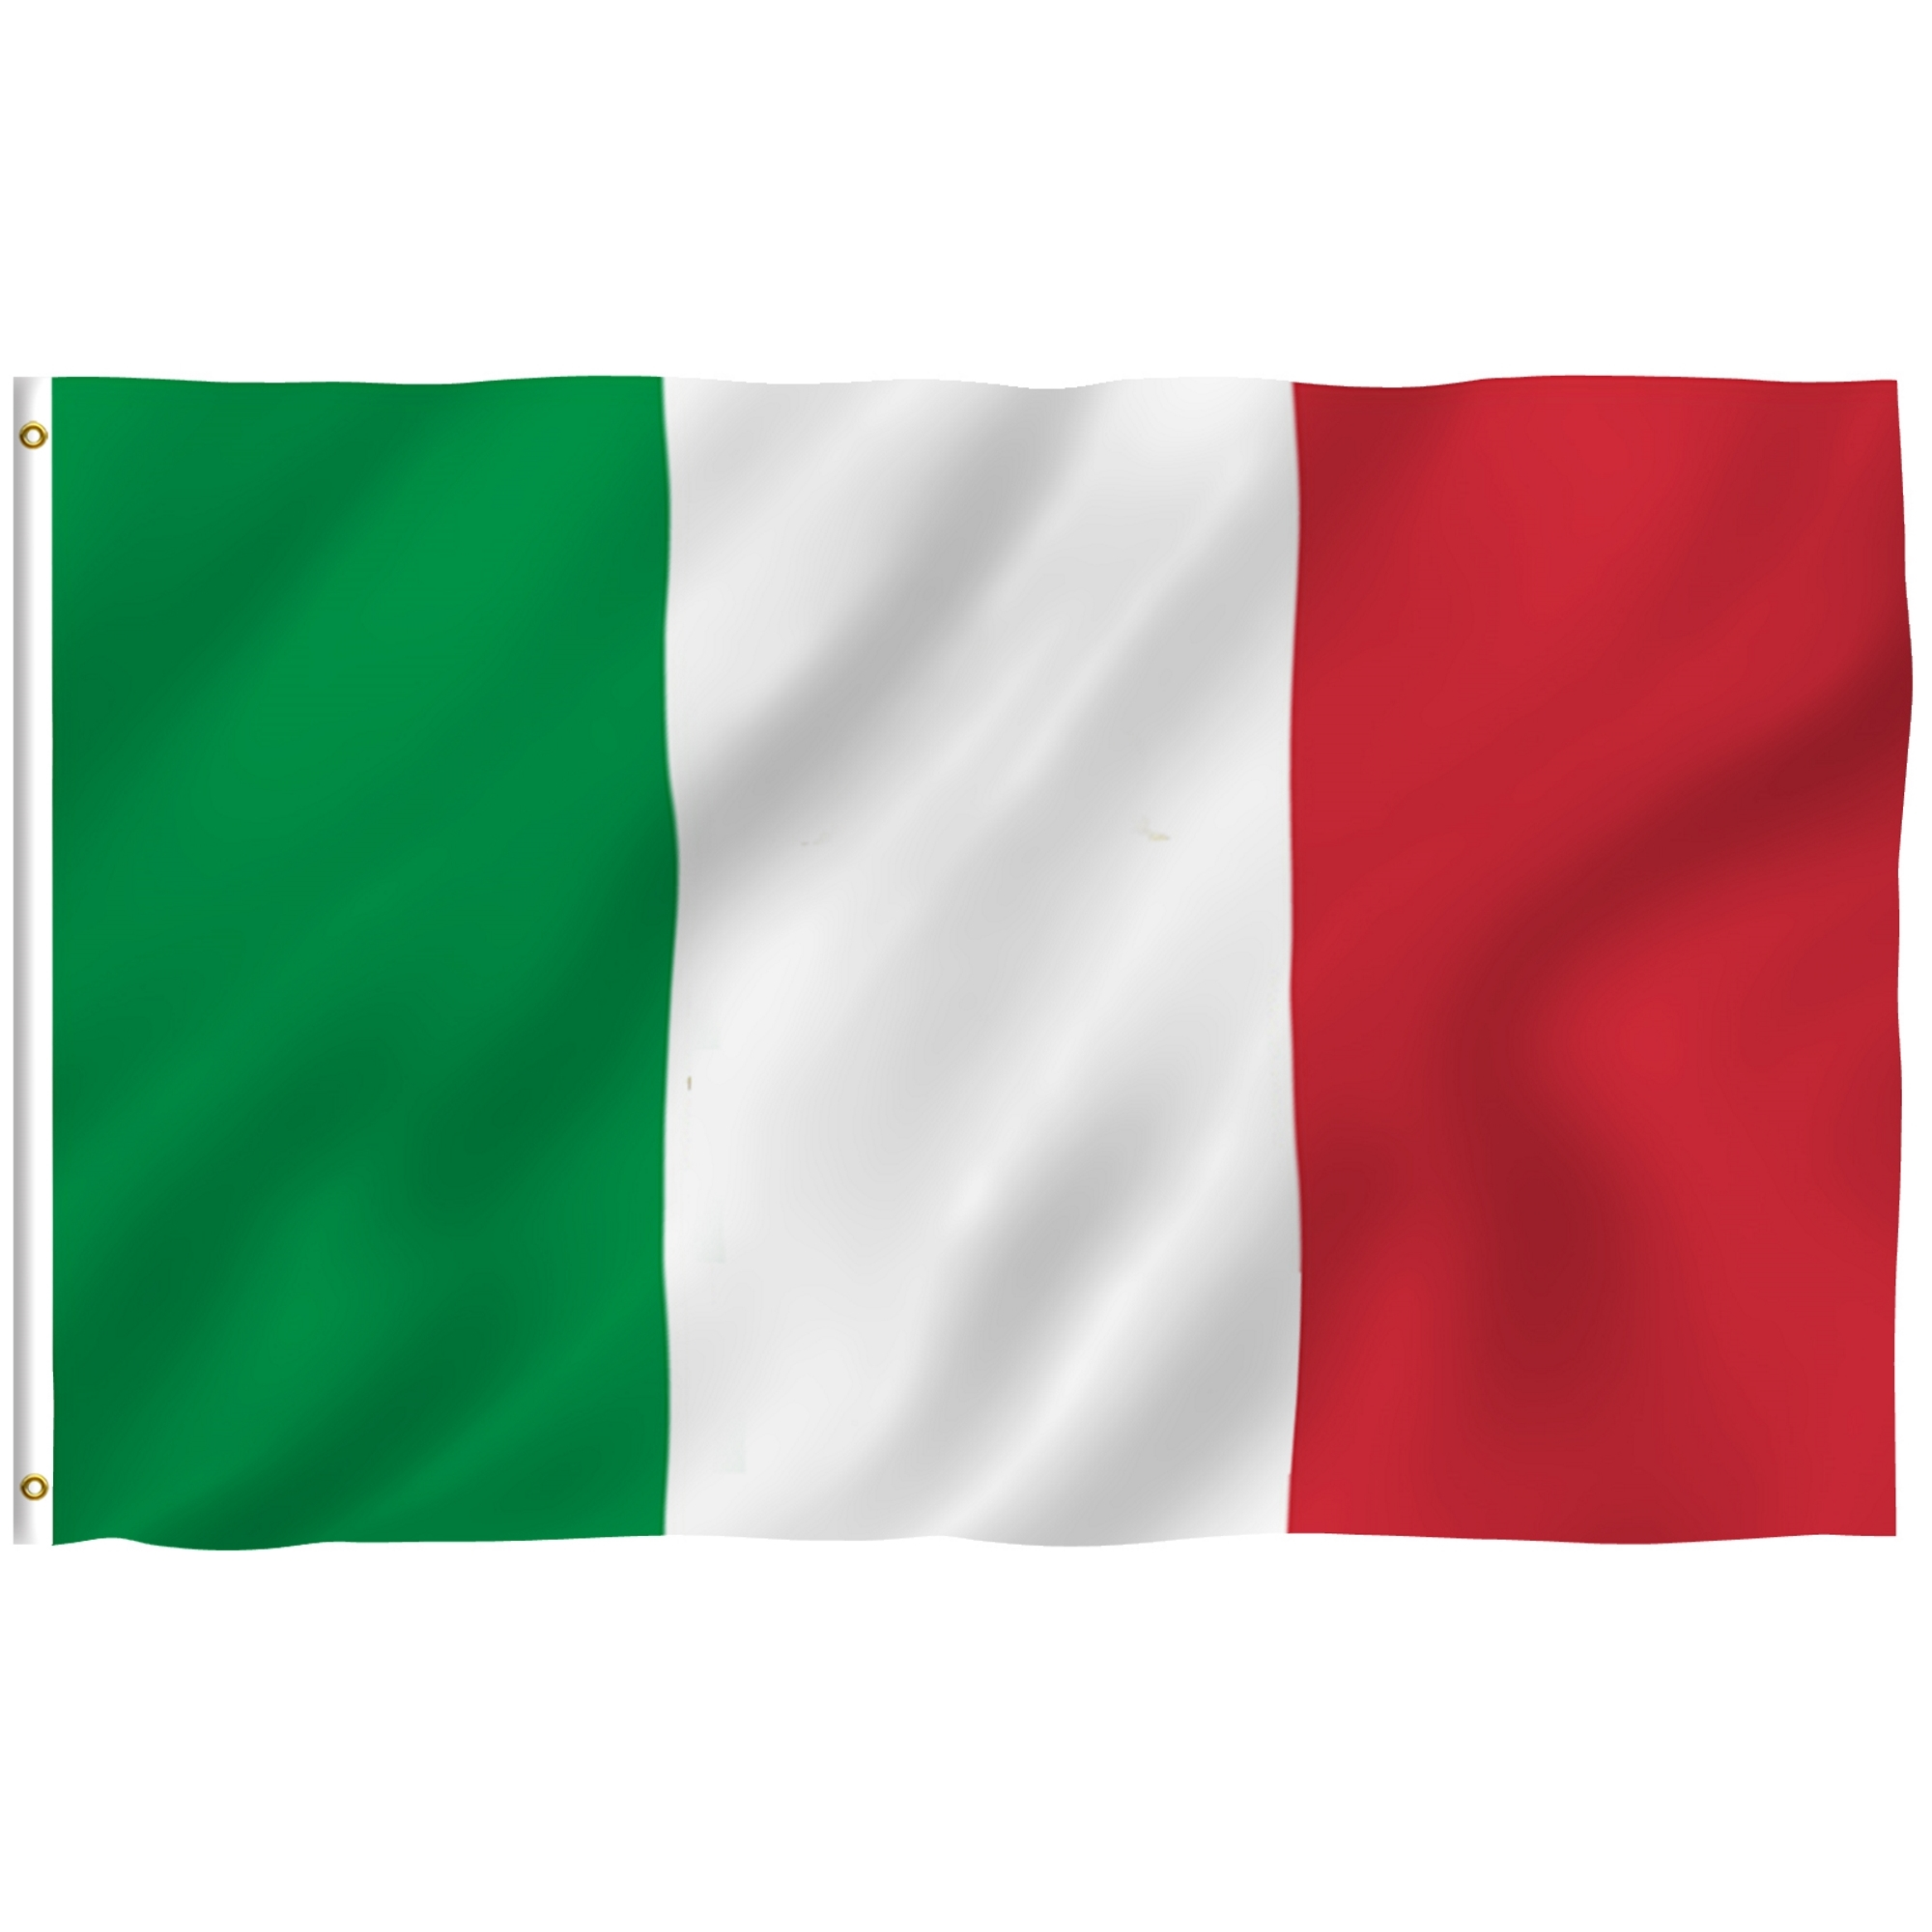 ANLEY [Fly Breeze] 3x5 Feet Italian Flag Vivid Color and UV Fade Resistant... by ANLEY